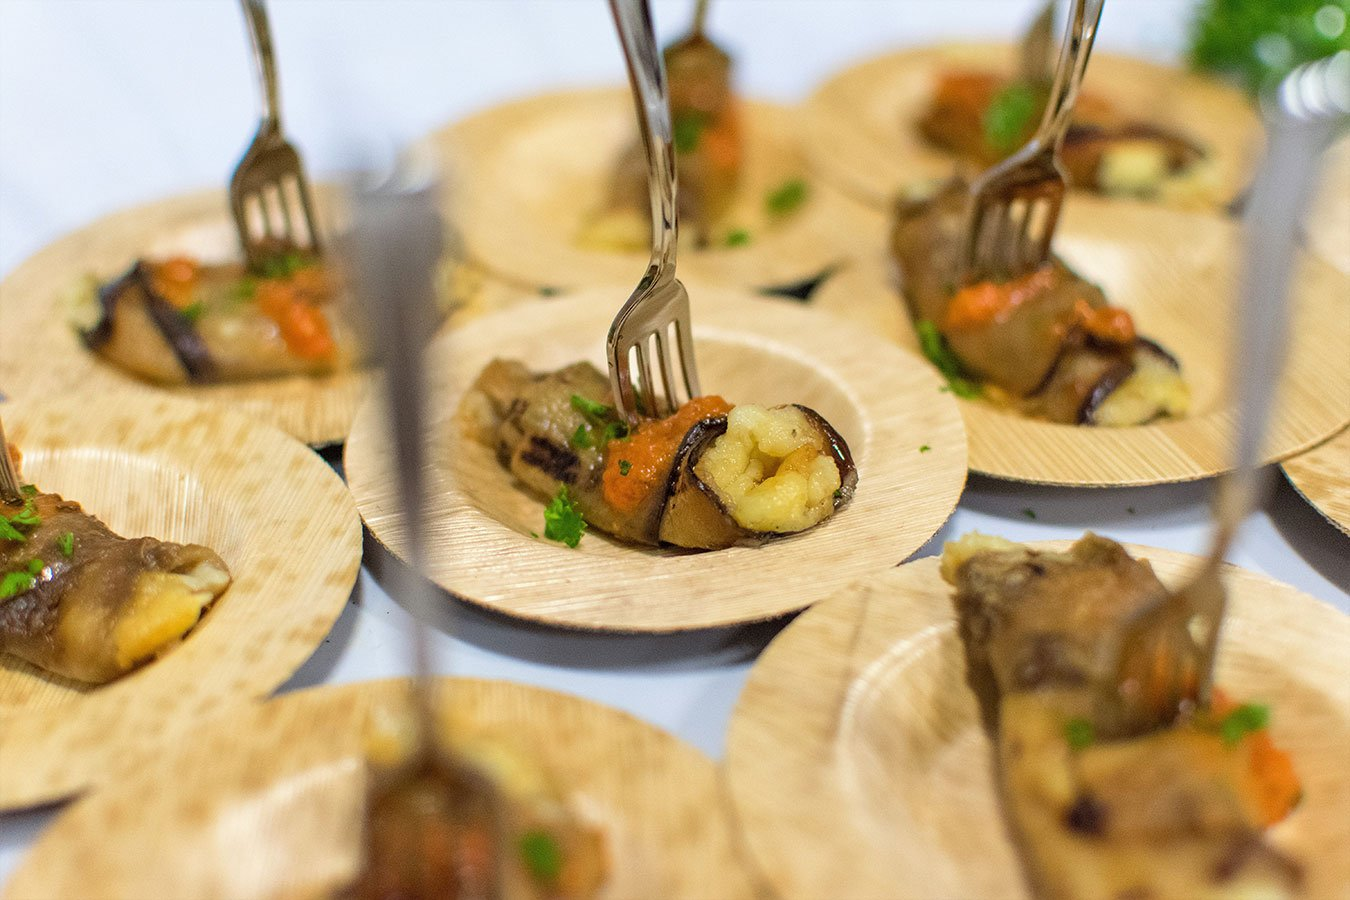 Eco friendly wedding ideas | Bio-degradable bamboo hors d'oeuvres plates